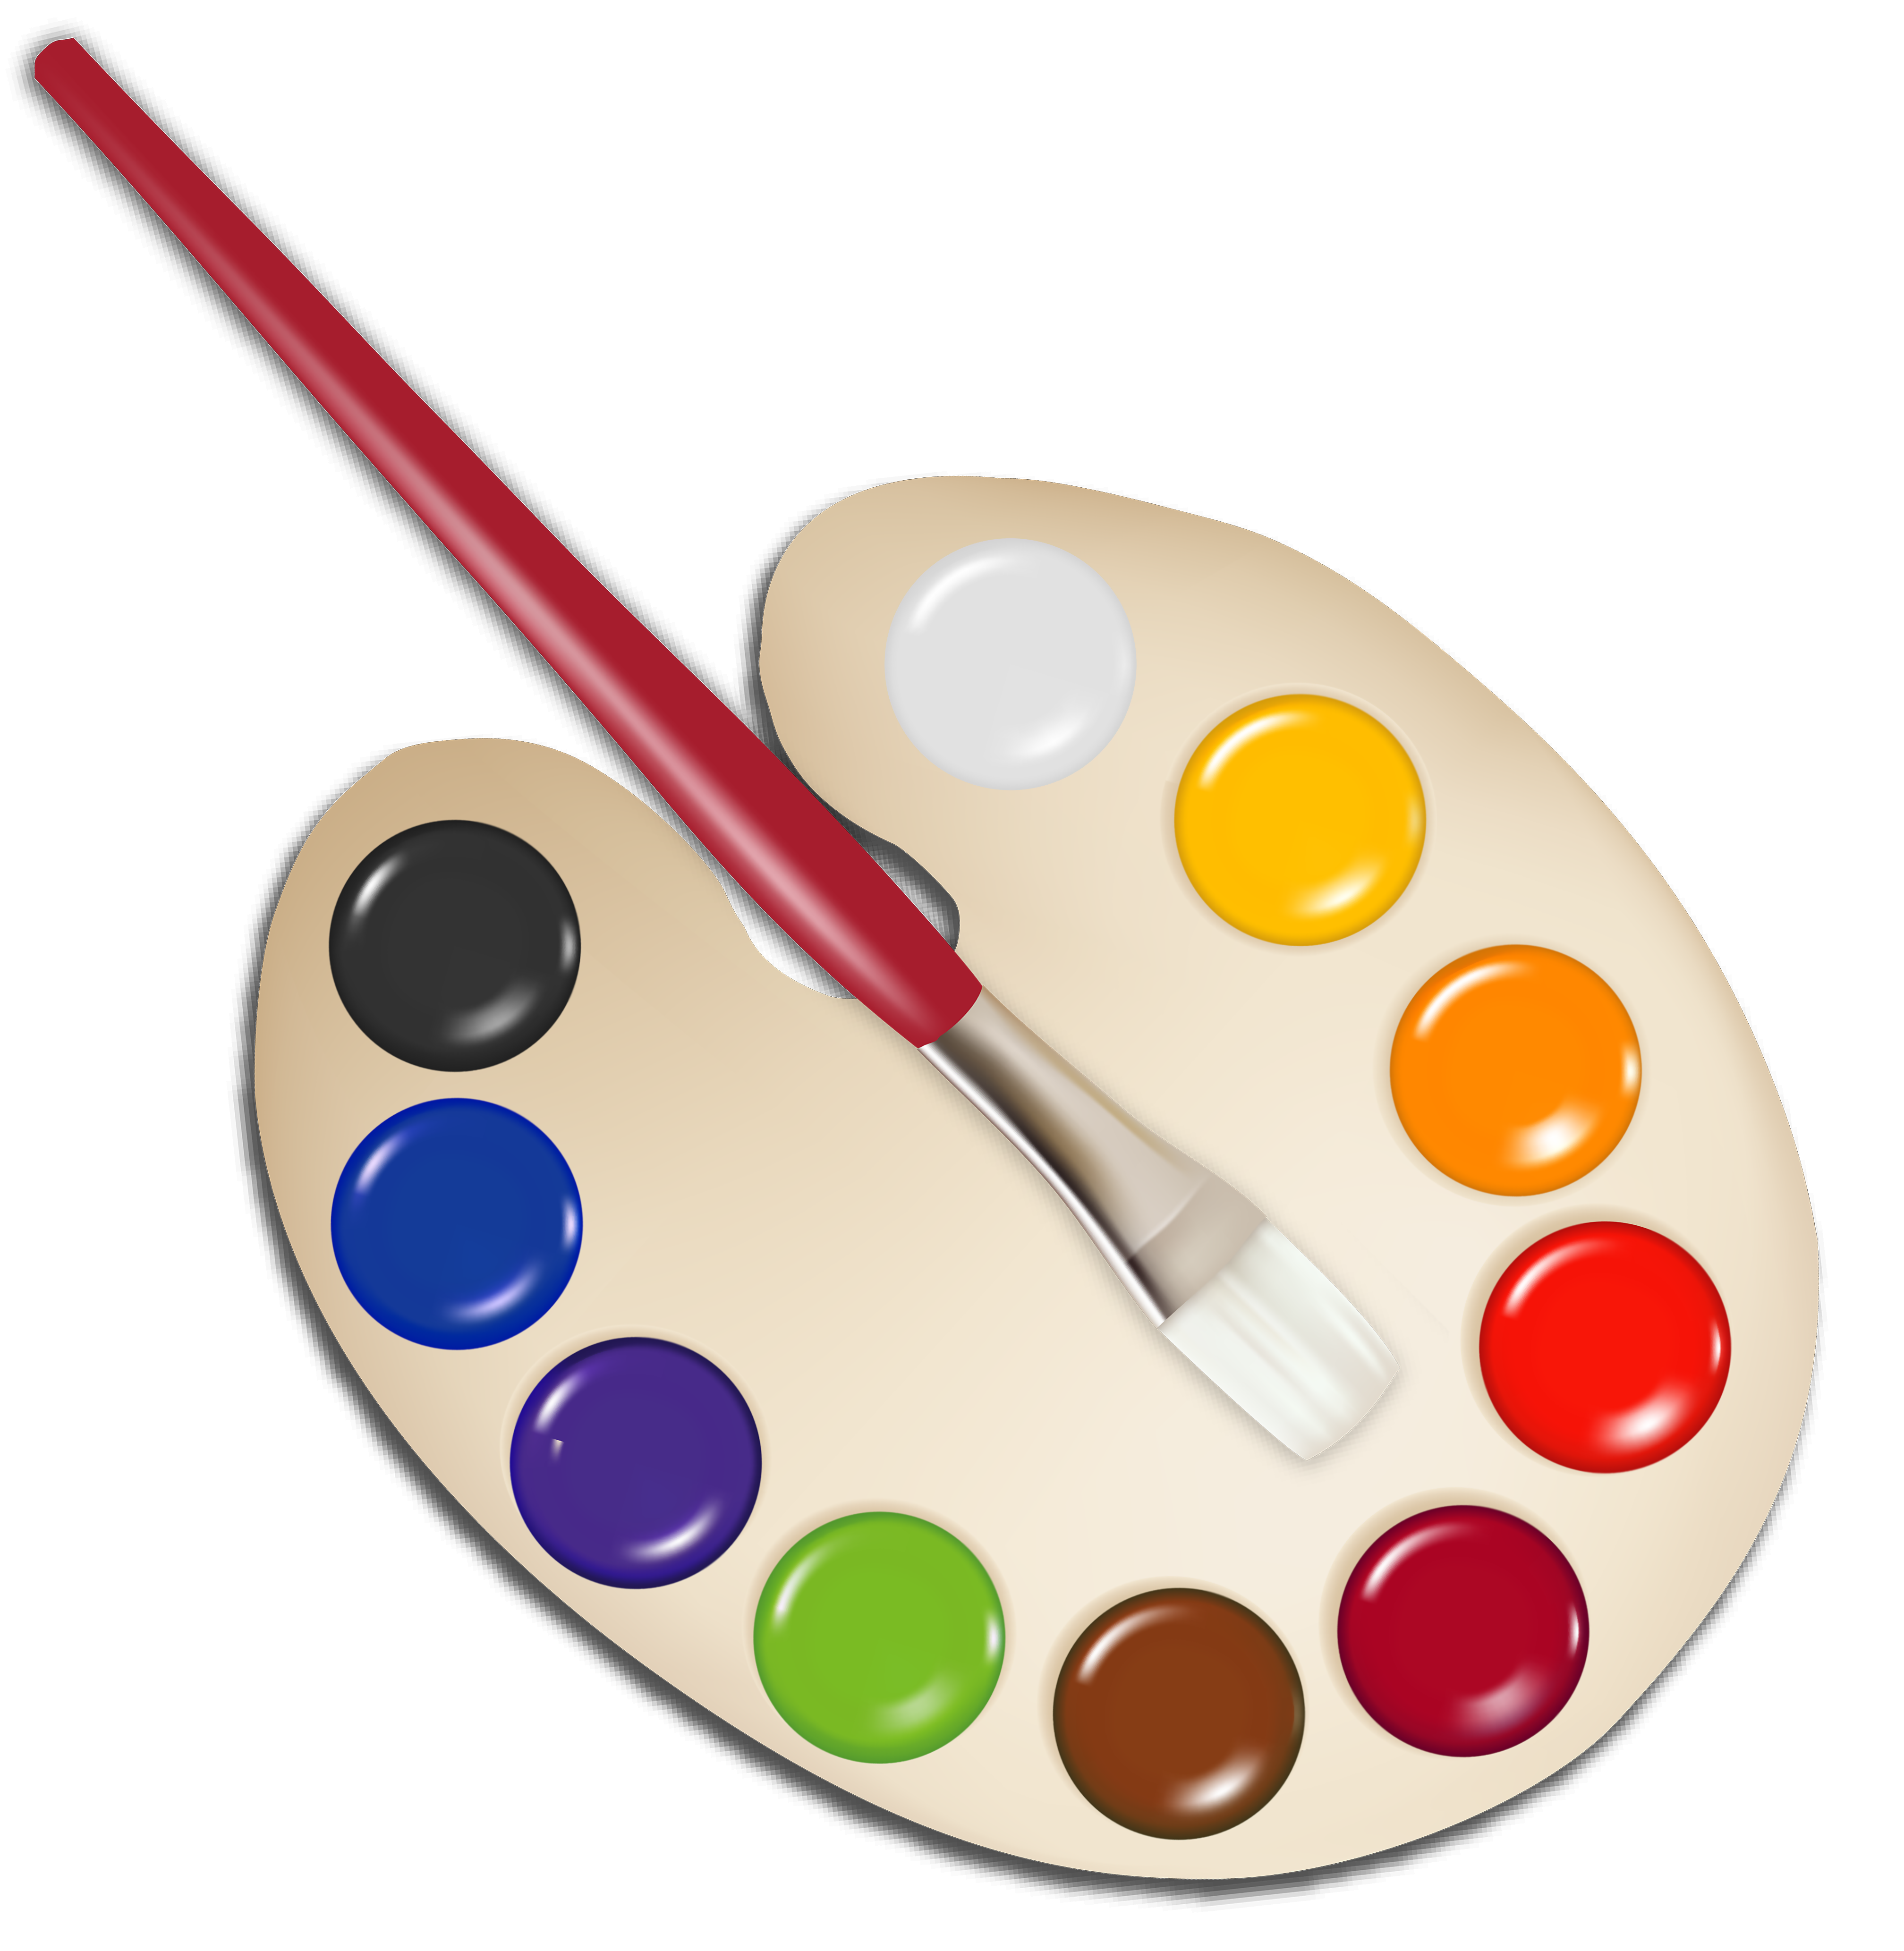 Palette clipart school. With paint brush png